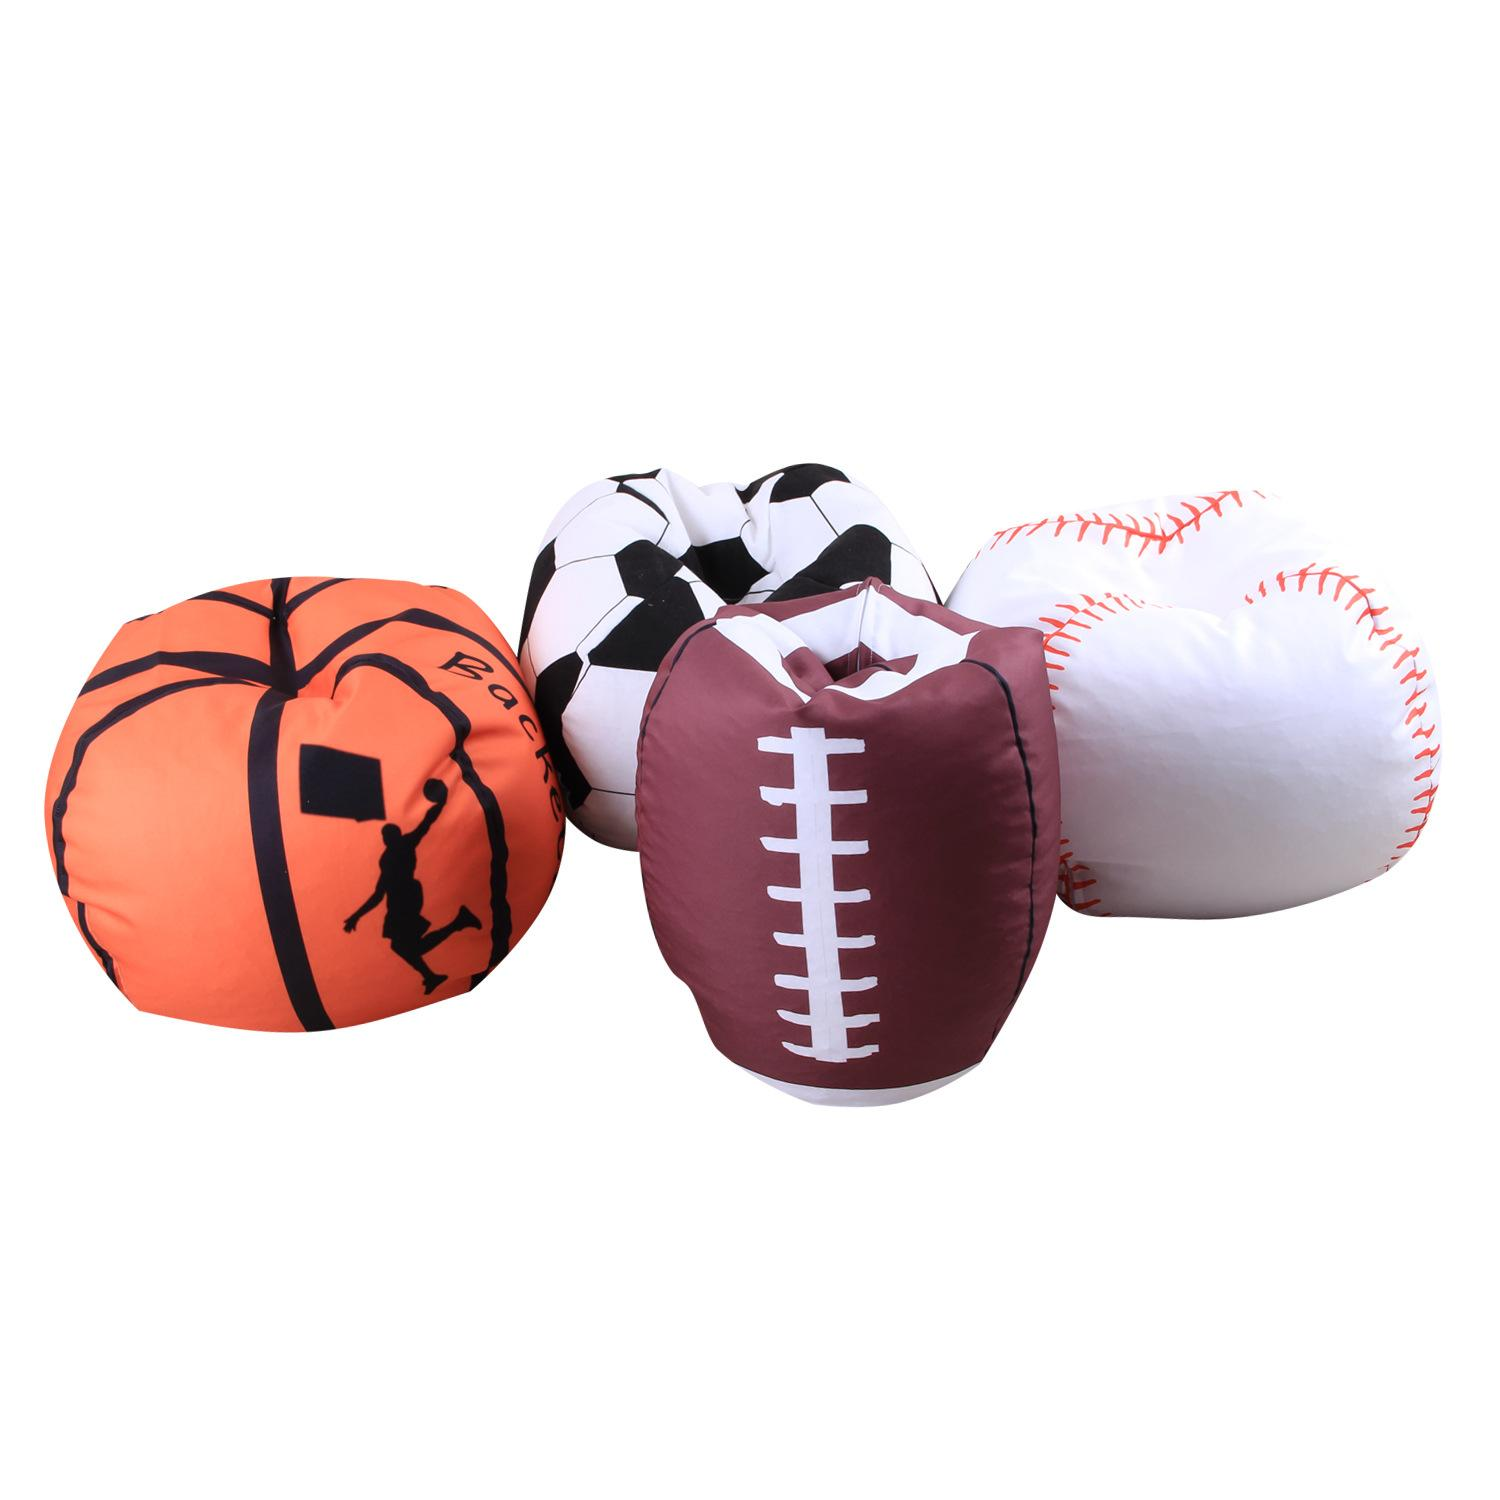 Marvelous 18 Inch Toys Storage Bag Sitting Chair Bean Bags Football Basketball Baseball Rugby Shape Car Organizer Stuffed Plush Bean Bags Gga1871 Alphanode Cool Chair Designs And Ideas Alphanodeonline